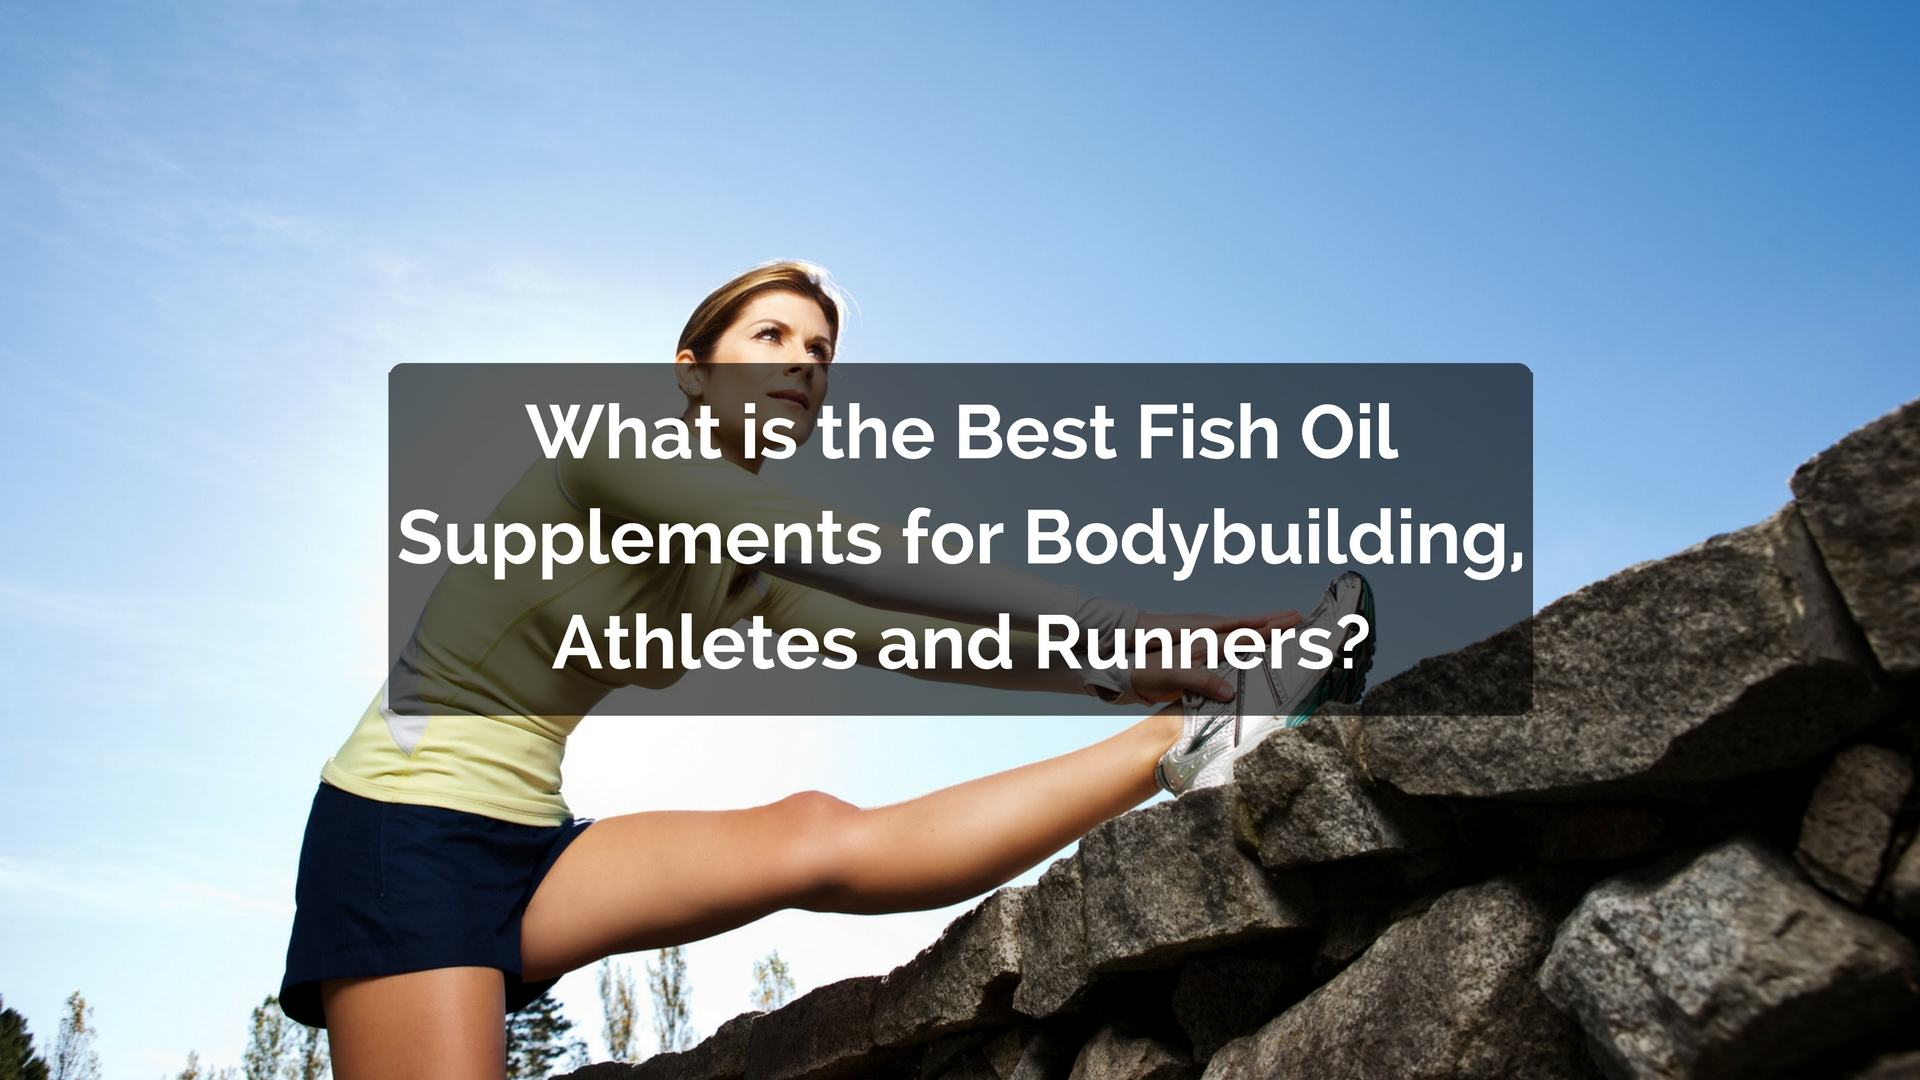 What fish oil is the best